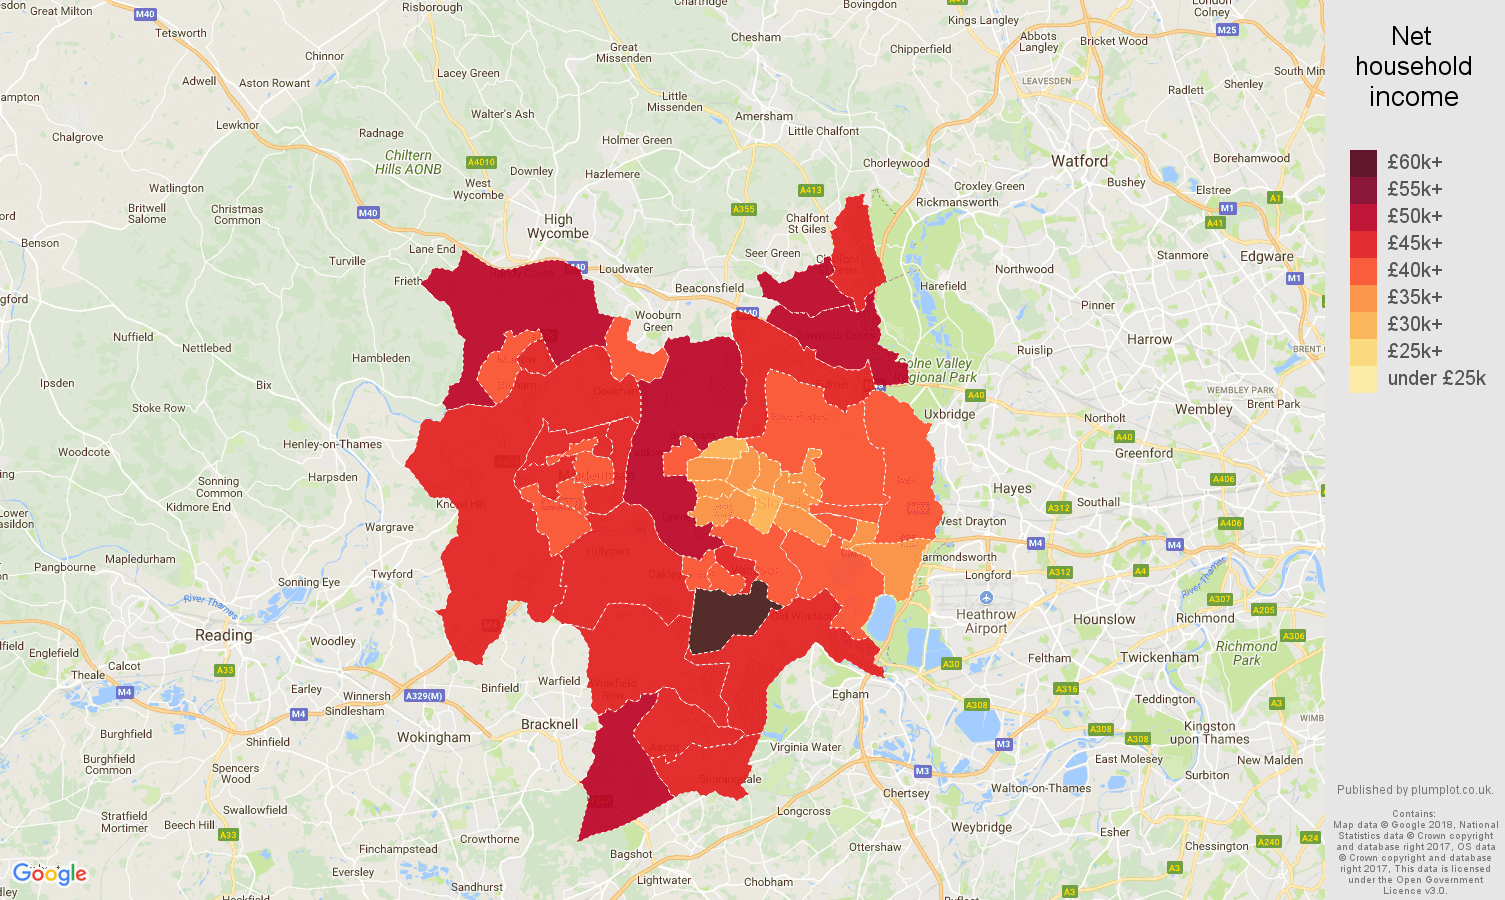 Slough net household income map